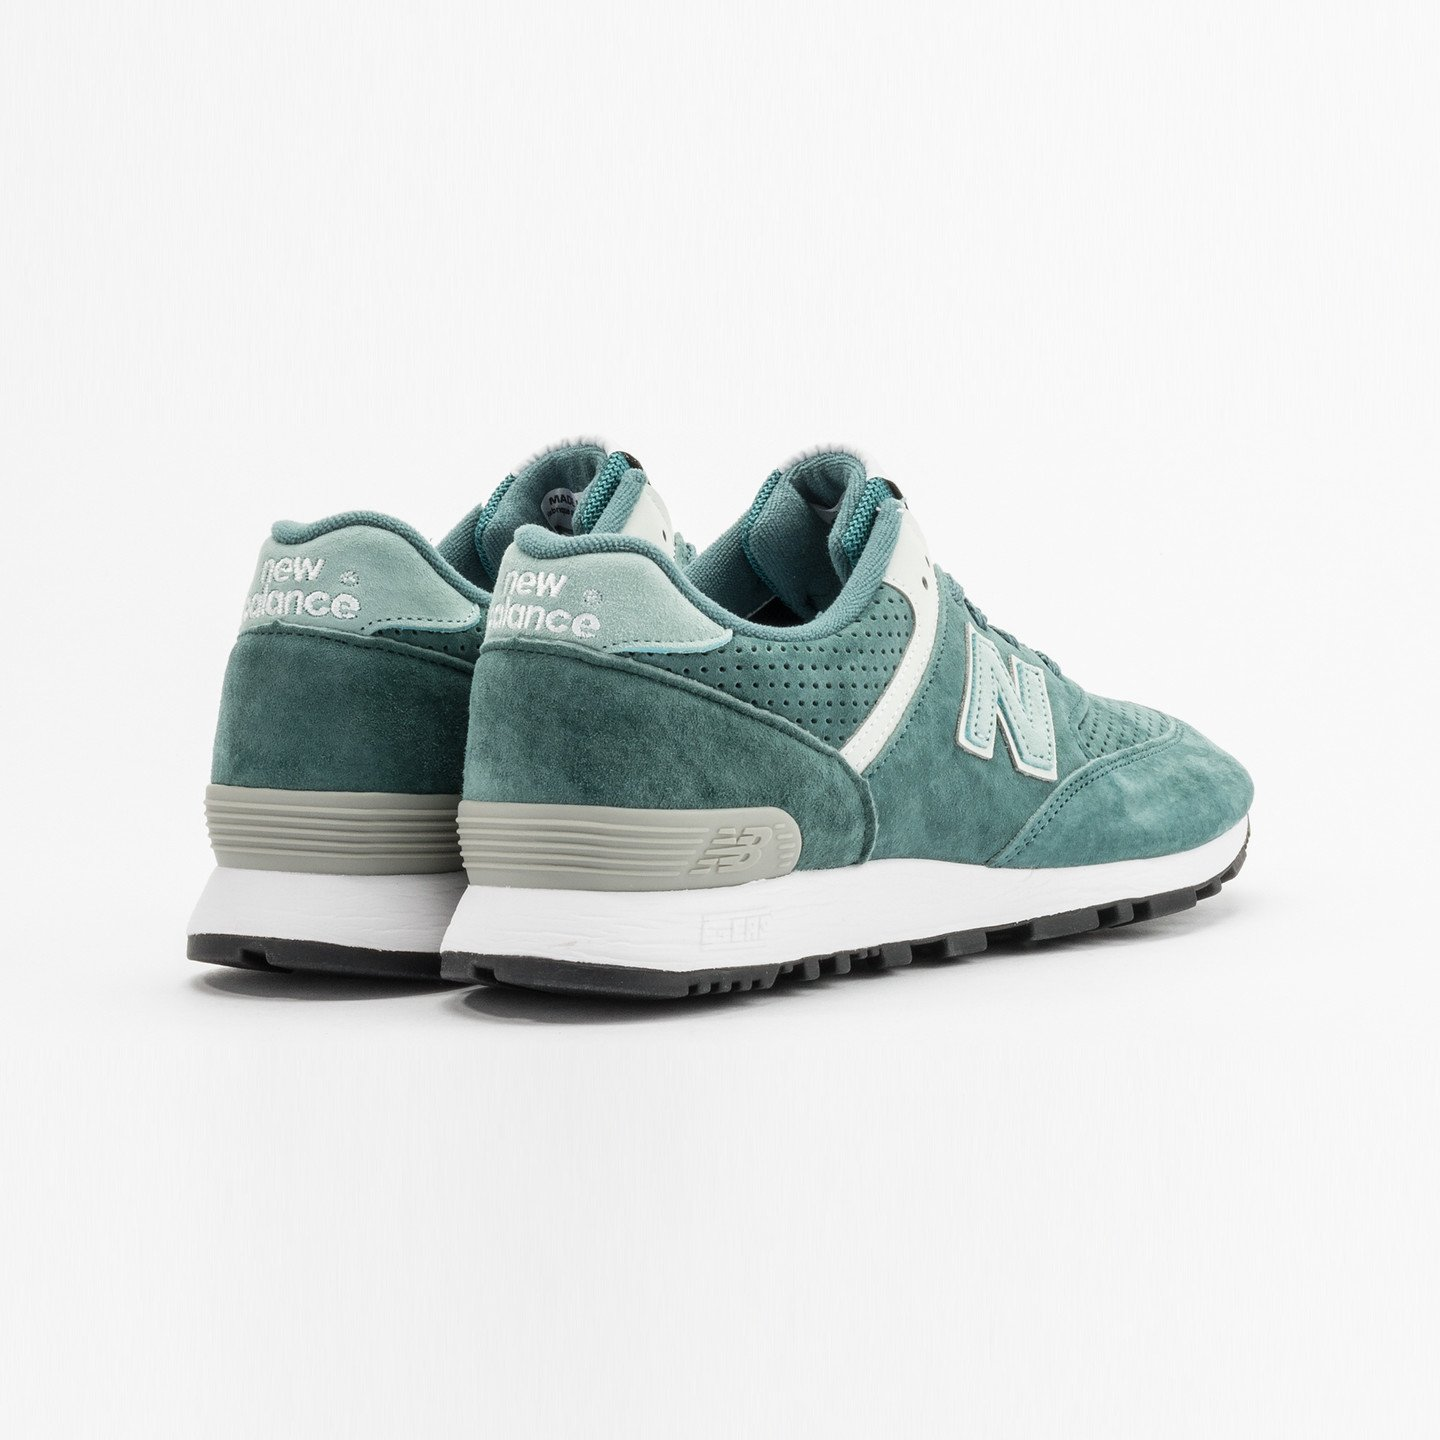 New Balance W 576 PMM - Made in UK Ocean Turquoise W576PMM